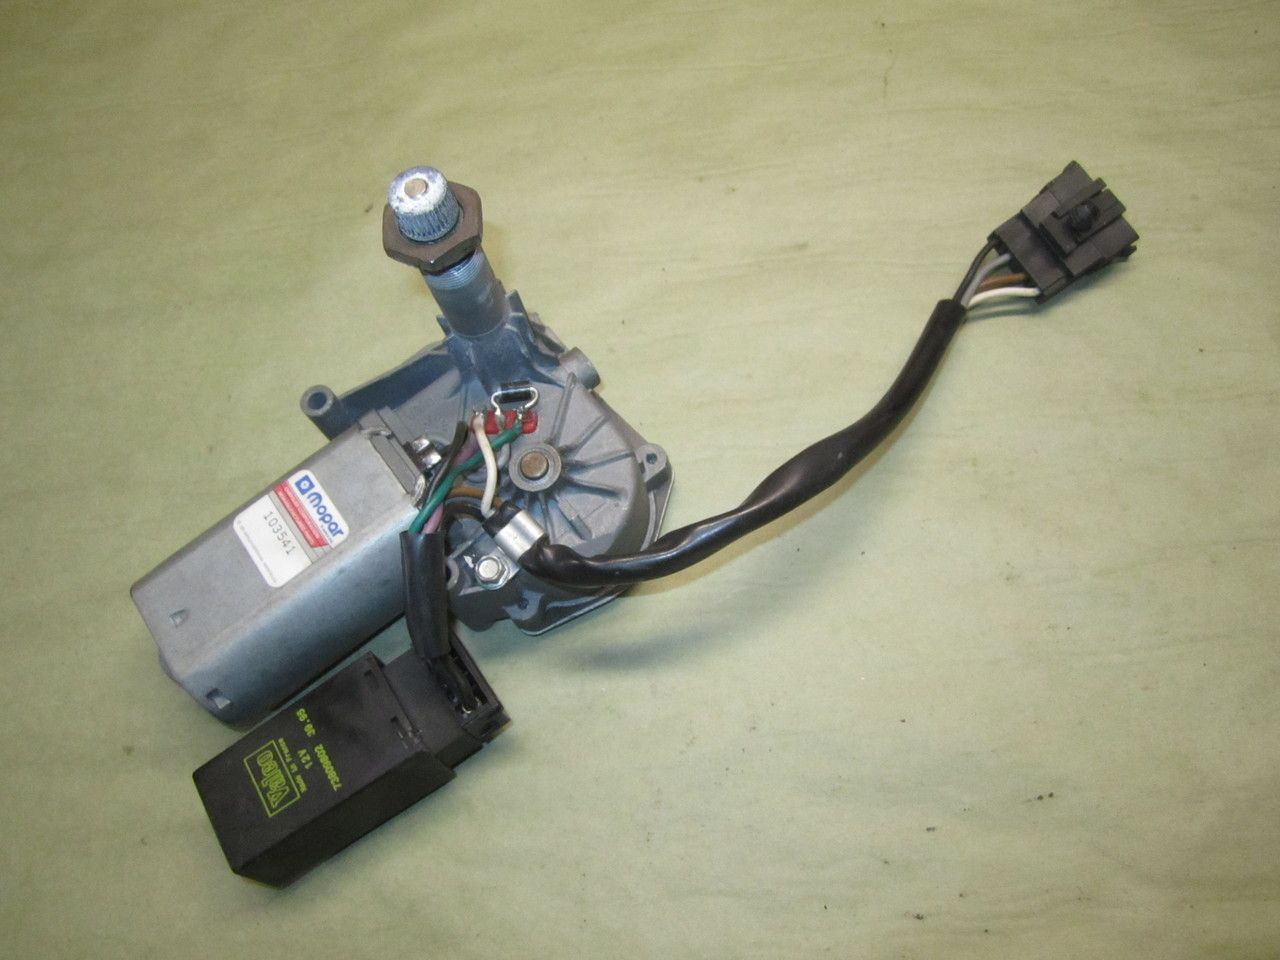 Price3995 Free Shipping To Anywhere In The Lower 48 Rear 1996 Jeep Cherokee Windshield Wipers Wiring Window Wiper Motor 91 96 Jeepparts Mopar Diy Repair